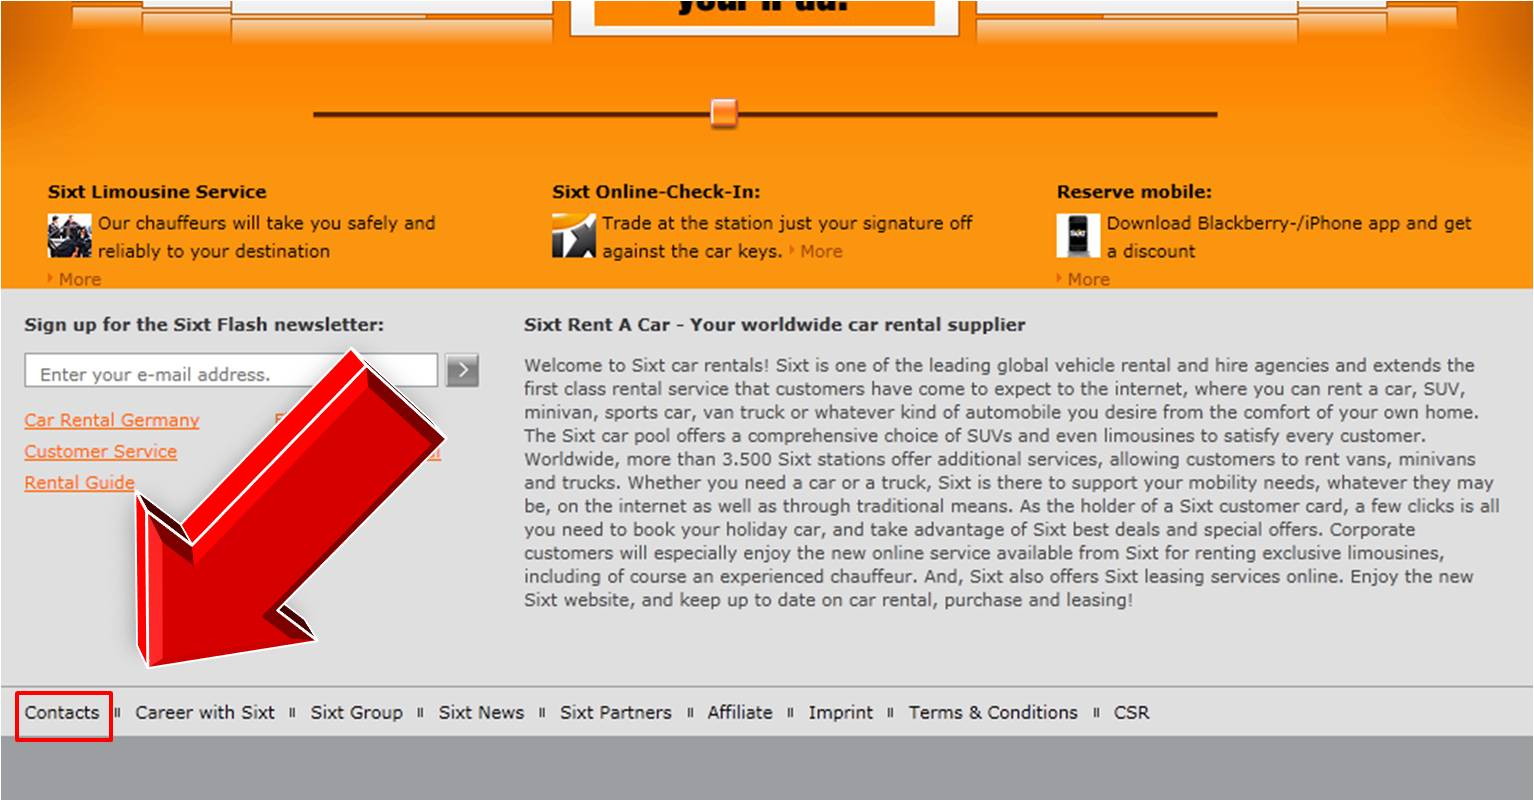 Sixt rent a car has a coupon for almost everyone: if you have rented a car from Sixt in the past, over the age of 50, a student, teacher, military, firefighter, airline employee, police officer or so much more - there is a car rental coupon for everyone!